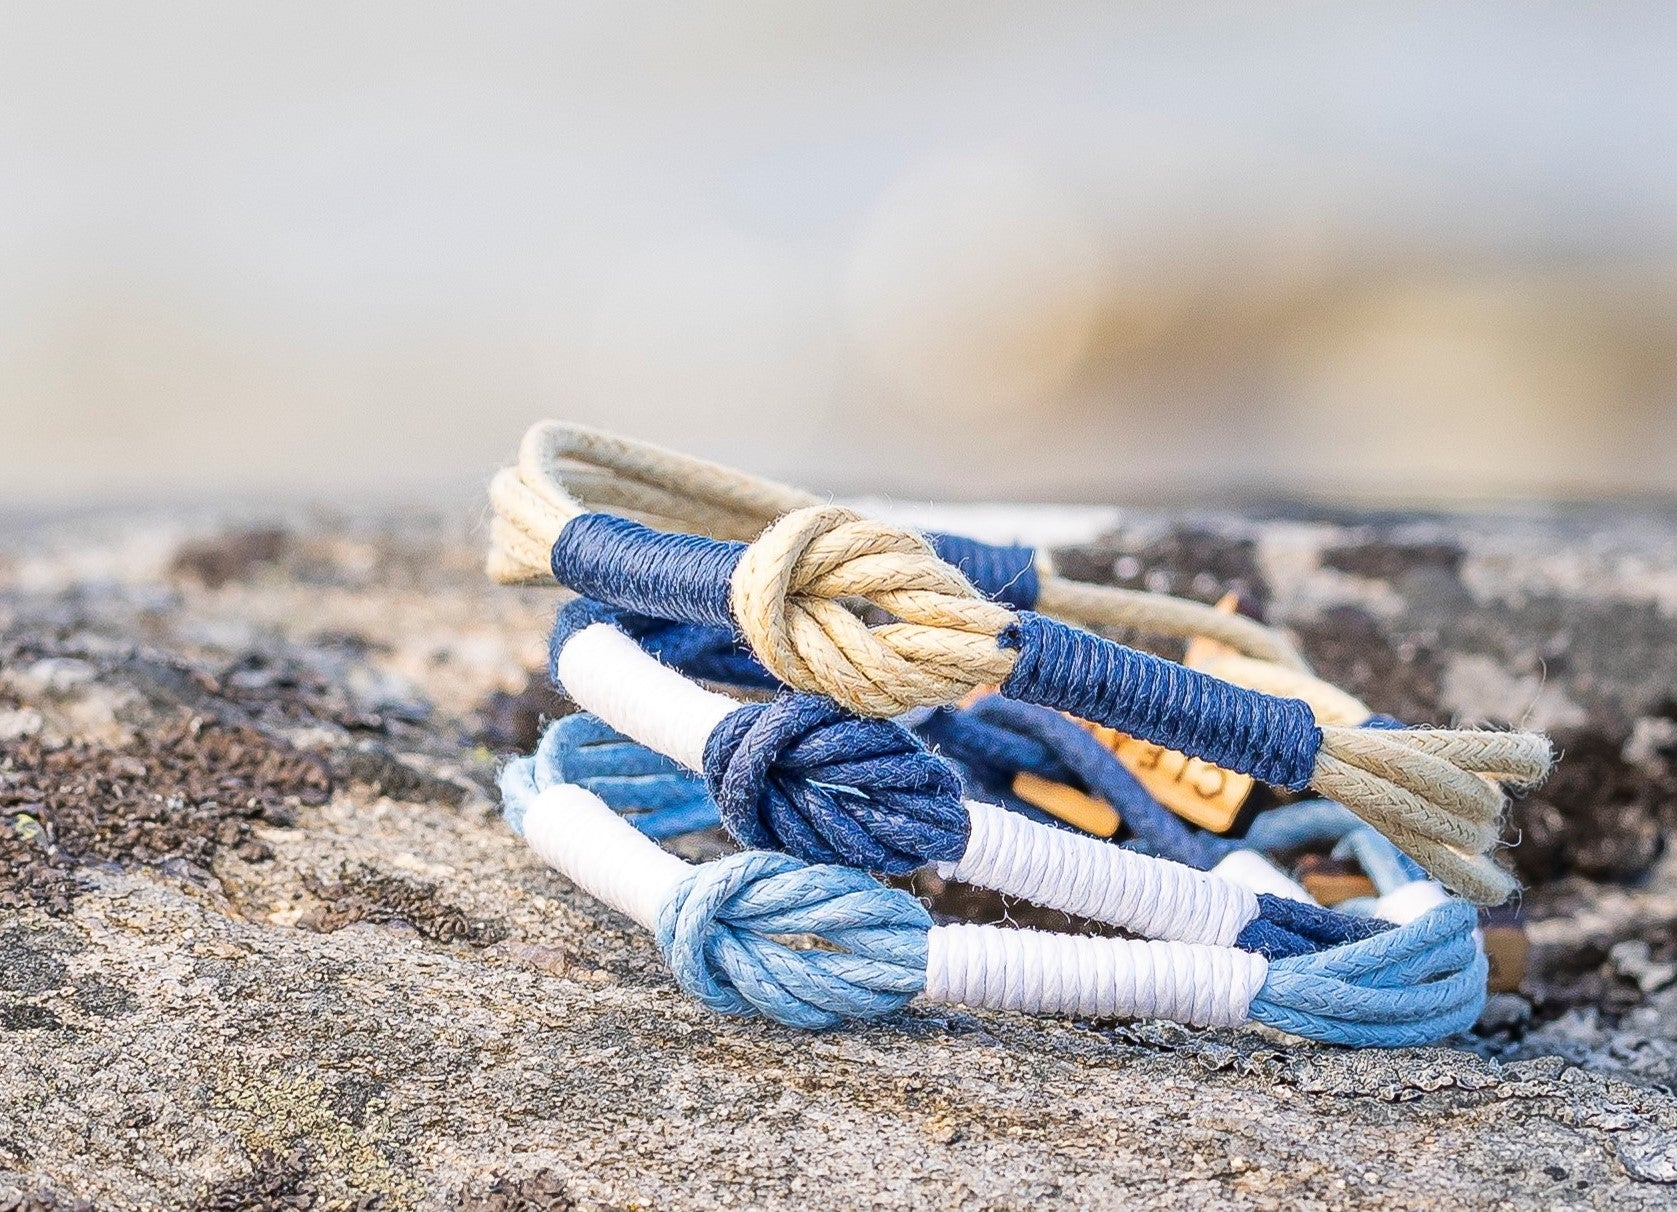 CleanSea bracelets removing 1 kilo of plastic from the ocean